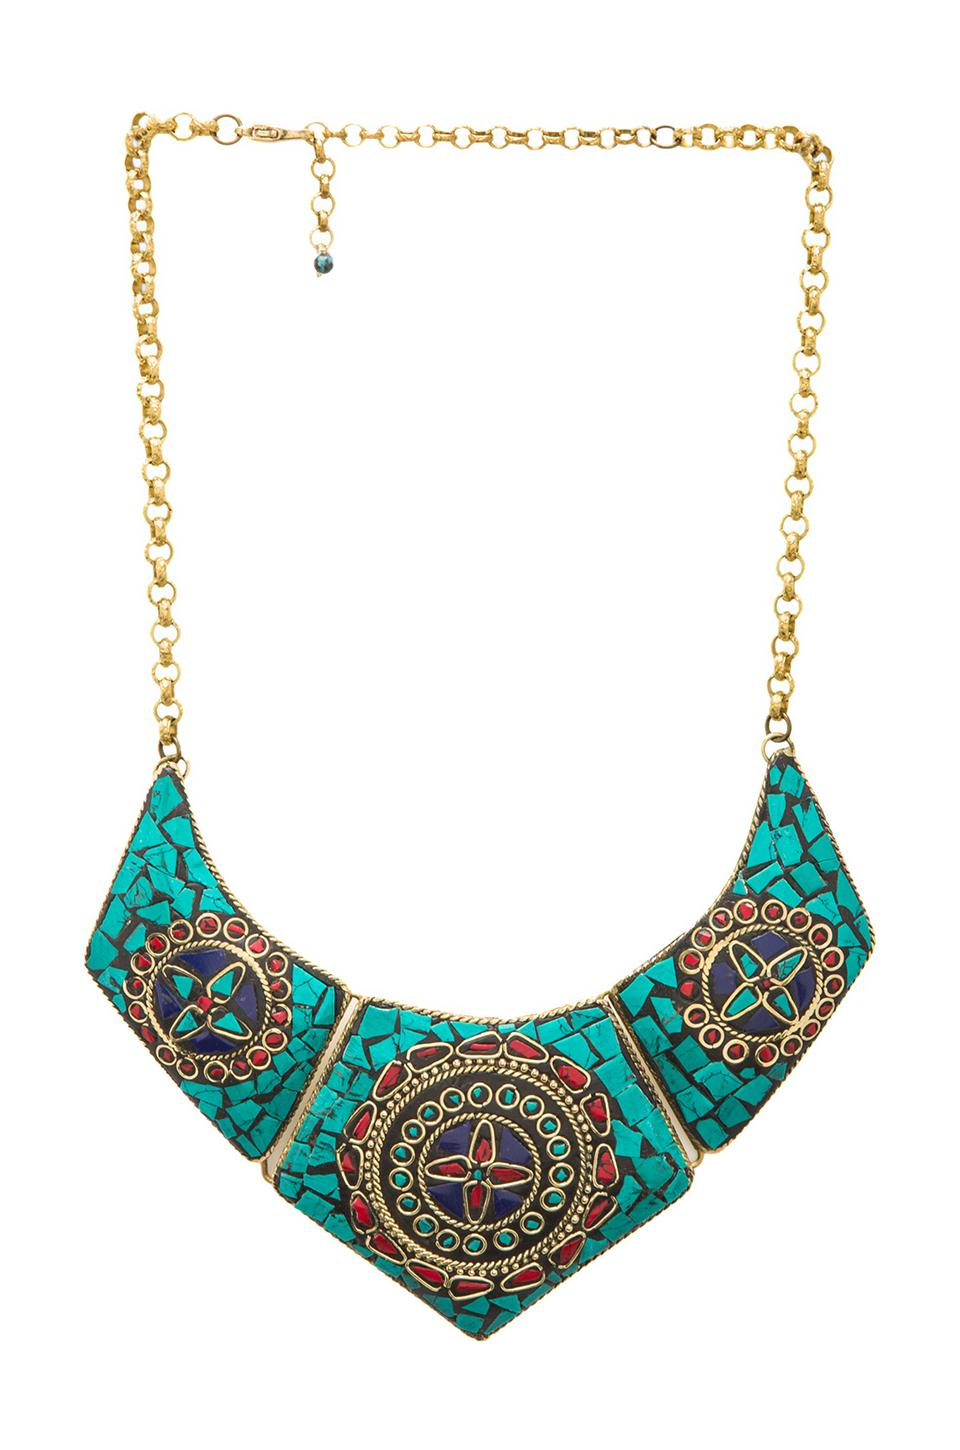 Natalie B Jewelry Natalie B Chevry Necklace in Turquoise Brass